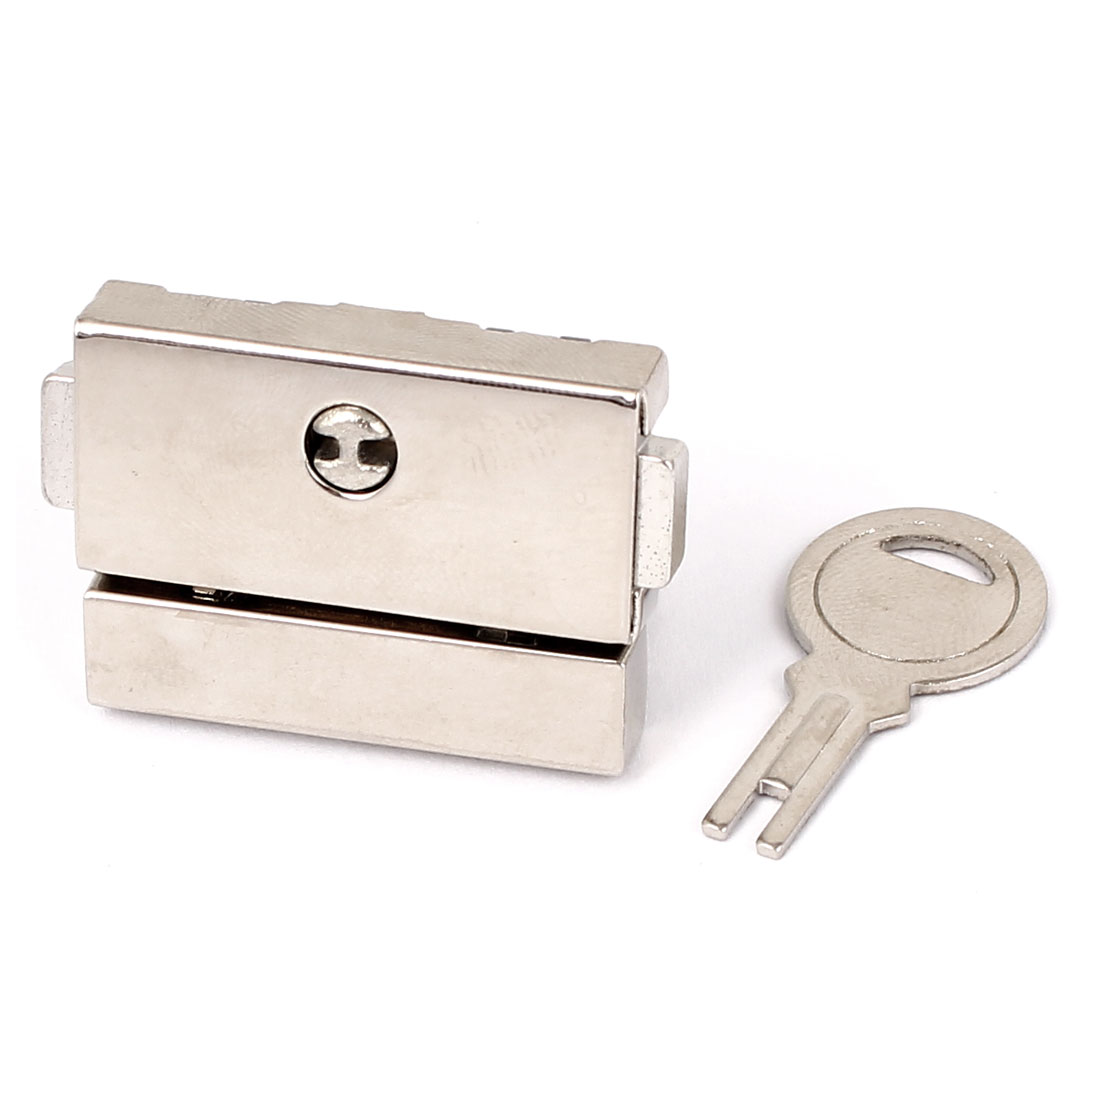 Suitcase Drawer Hasp Boxes Clasp Toggle Lock Latch Silver Tone w Key